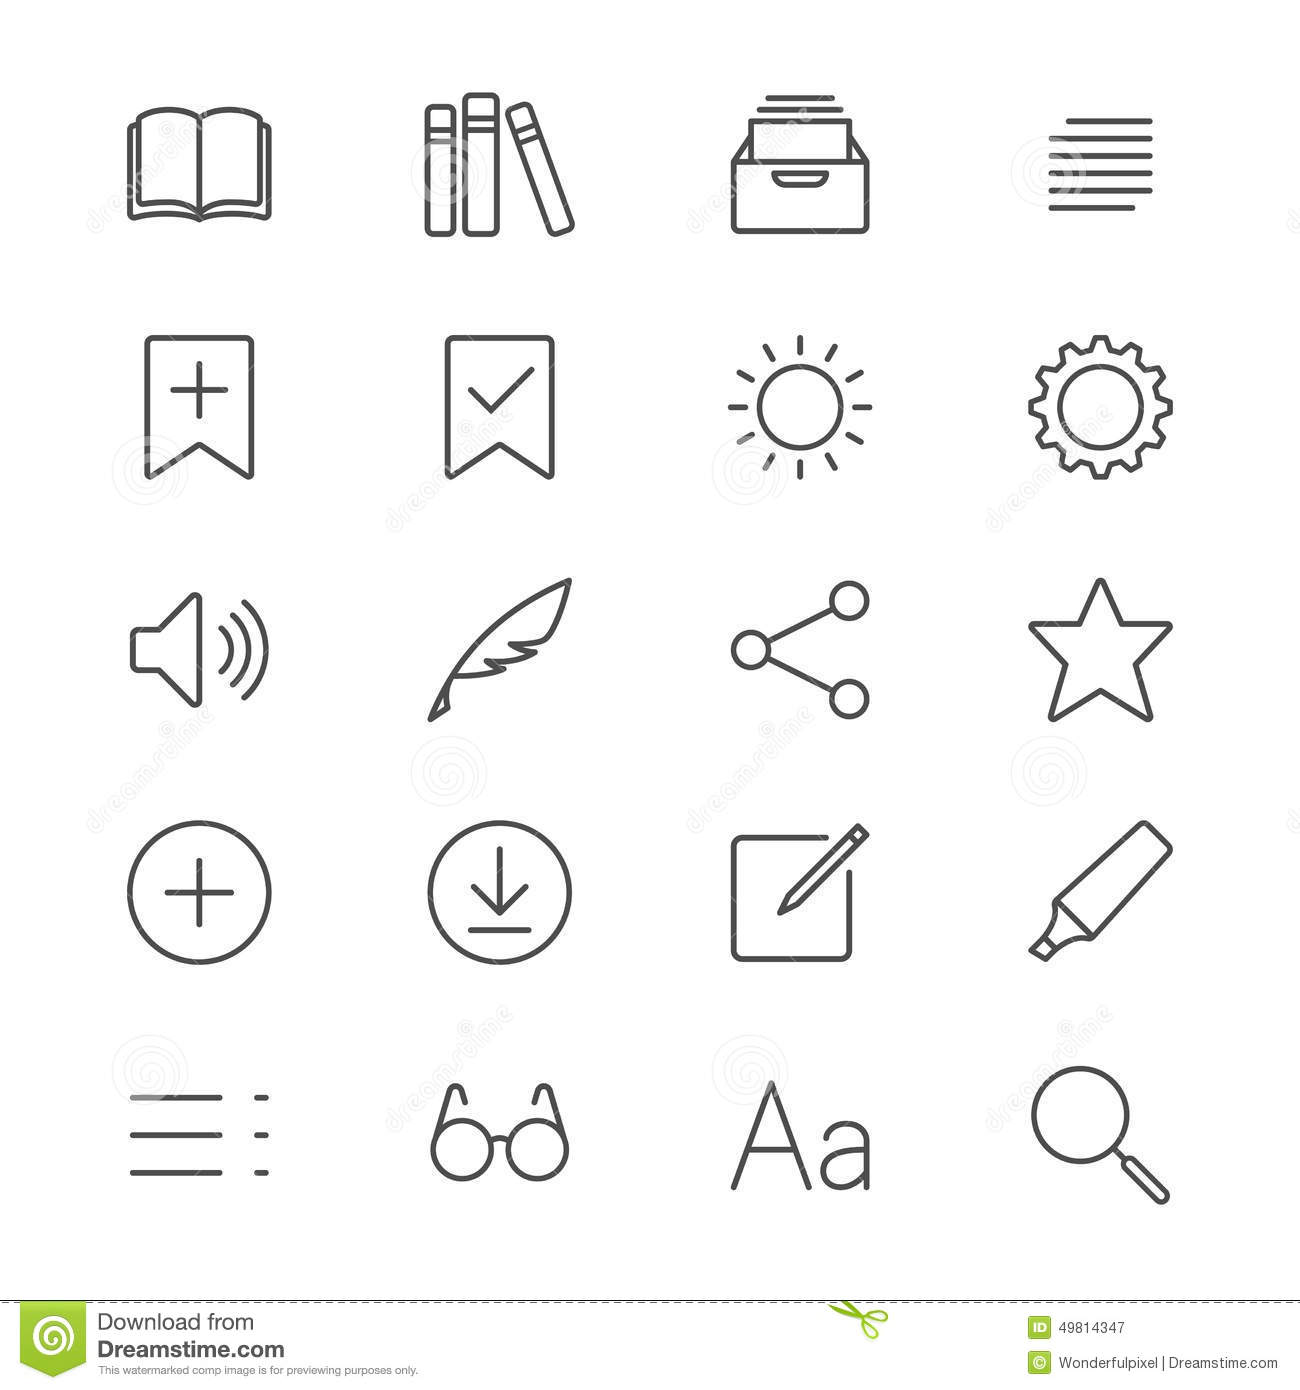 E-book reader thin icons stock vector. Illustration of